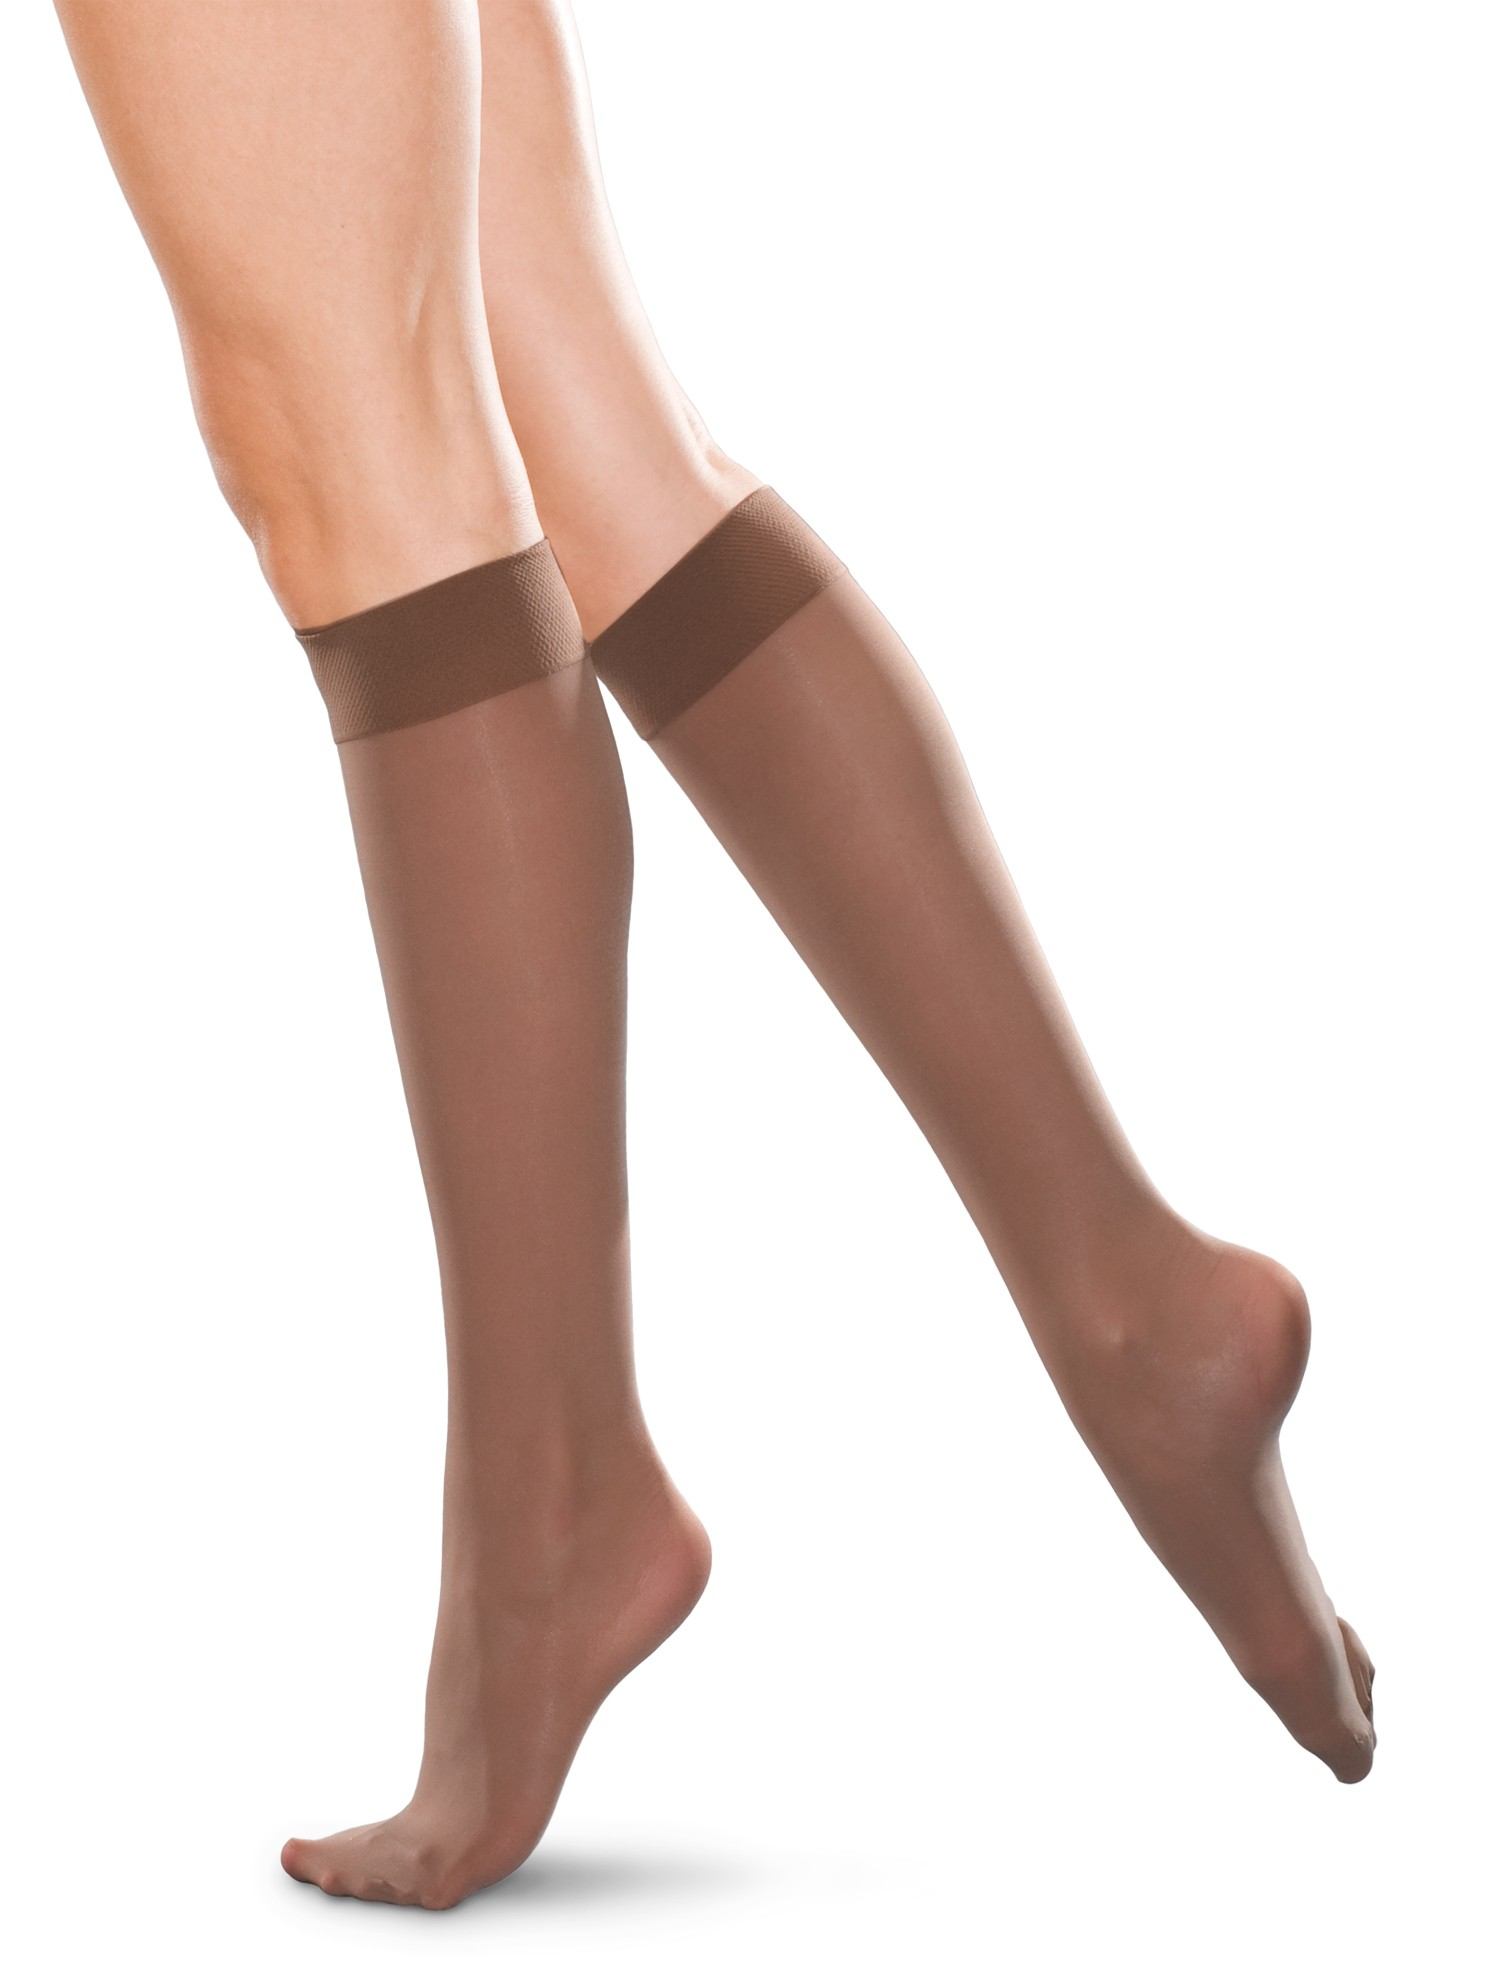 Wondering what do compression socks do if they have been recommended for you?